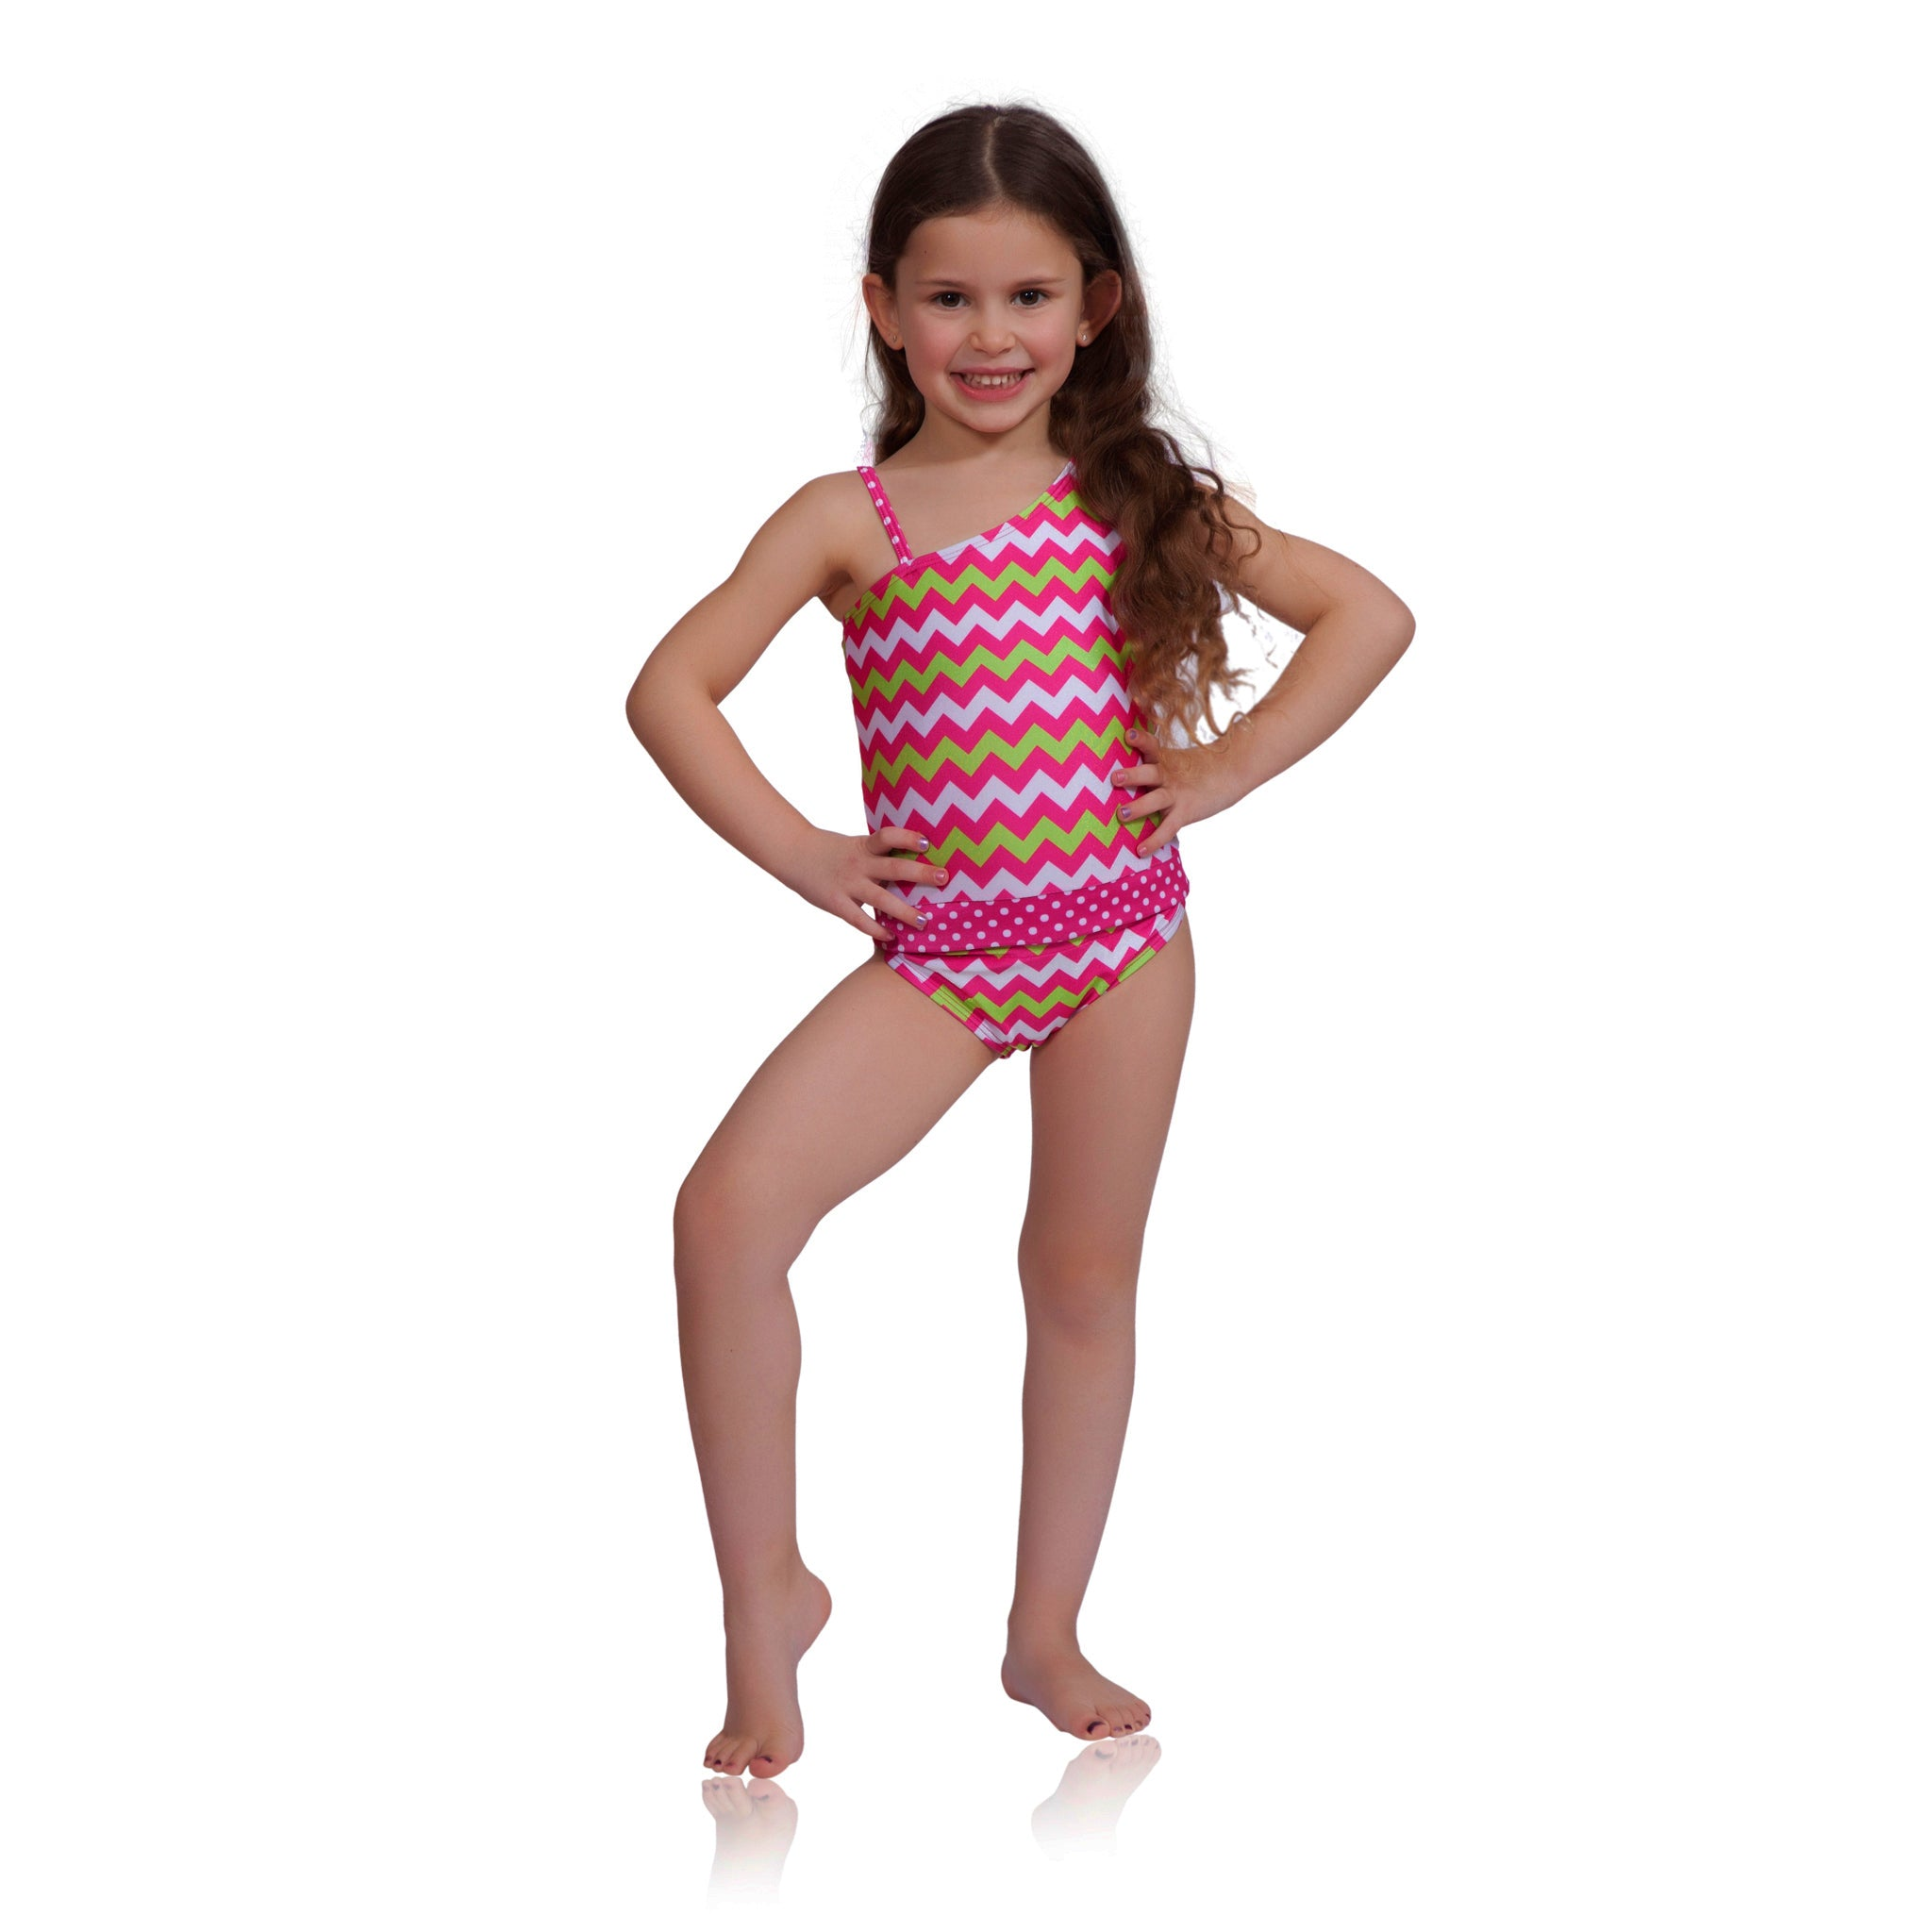 All in one swimsuits for baby girl-1463